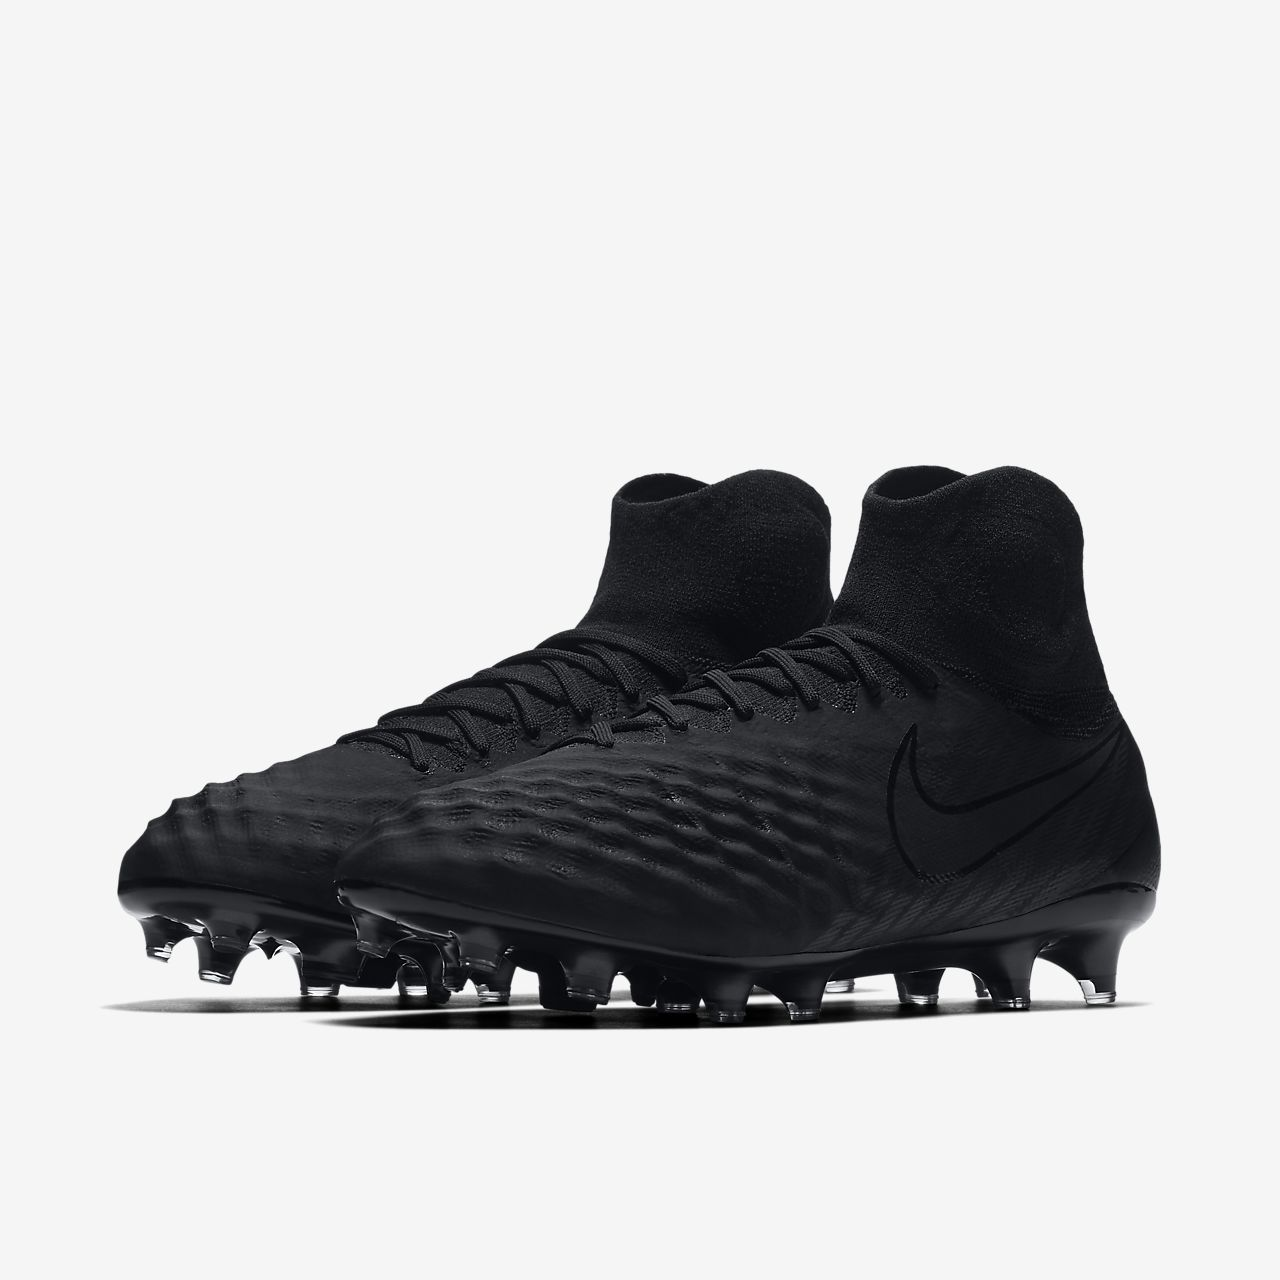 ... Nike Magista Obra II Firm-Ground Football Boot